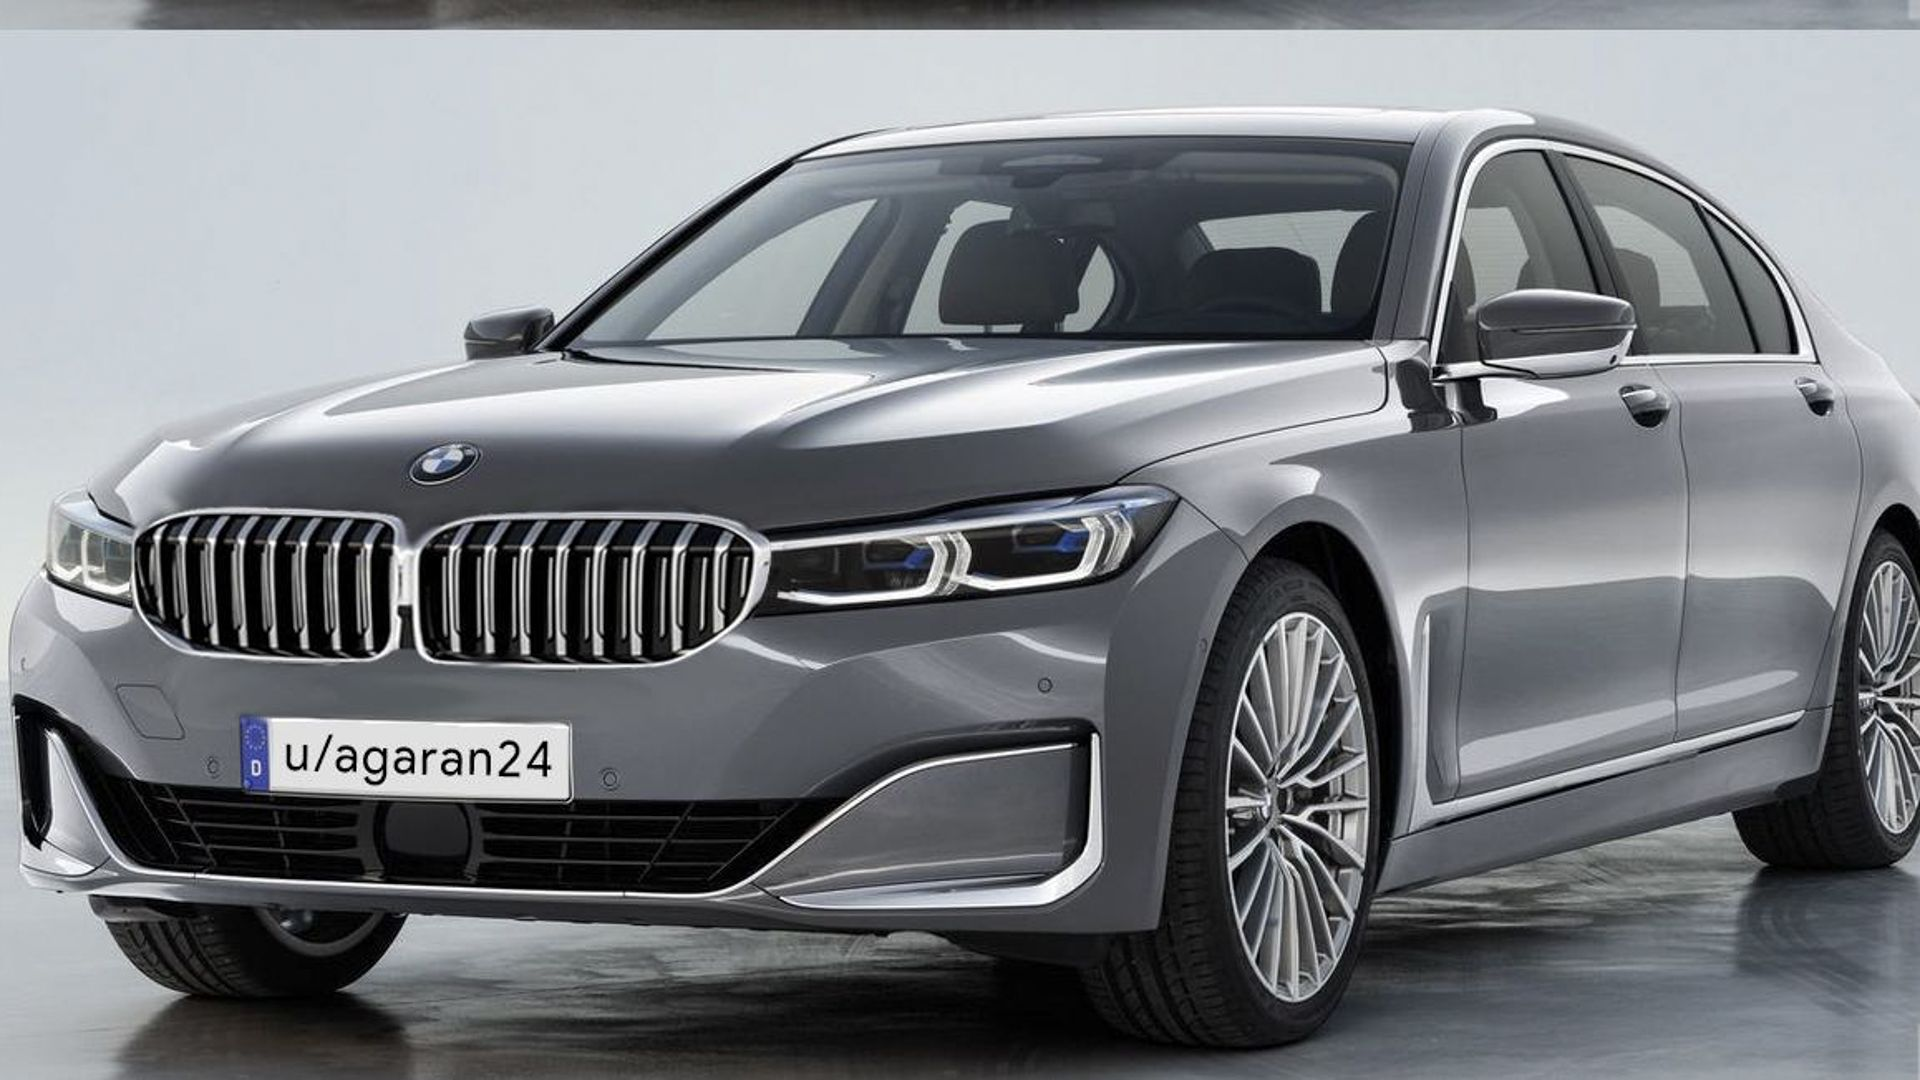 Does This Grille Fix Render Make The Bmw 7 Series Lci Look Better